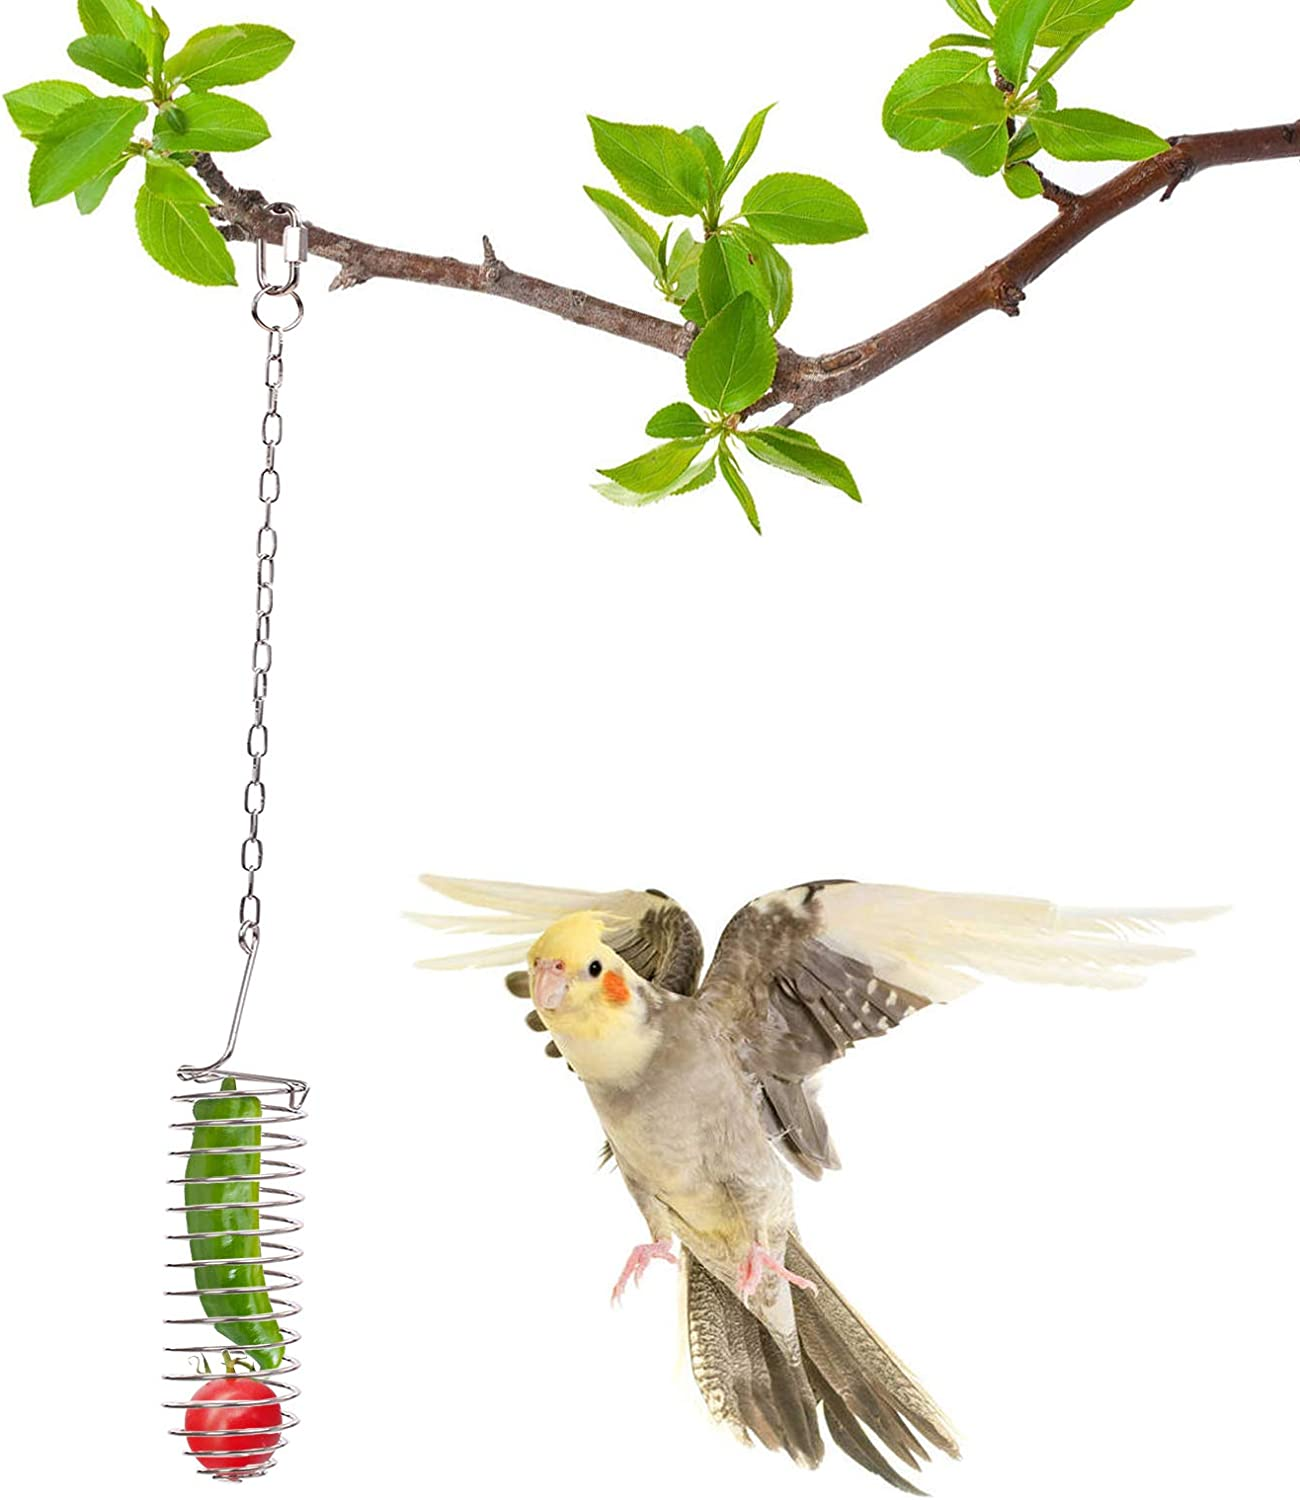 QBLEEV Bird Food Holder, Parrots Foraging Toys for Birdcage, Hanging Stainless Steel Bird Treat Feeders, Bird Food Basket for Fruit Vegetable Grain Wheat,Chew Toys for Conures Parakeets Cockatoos